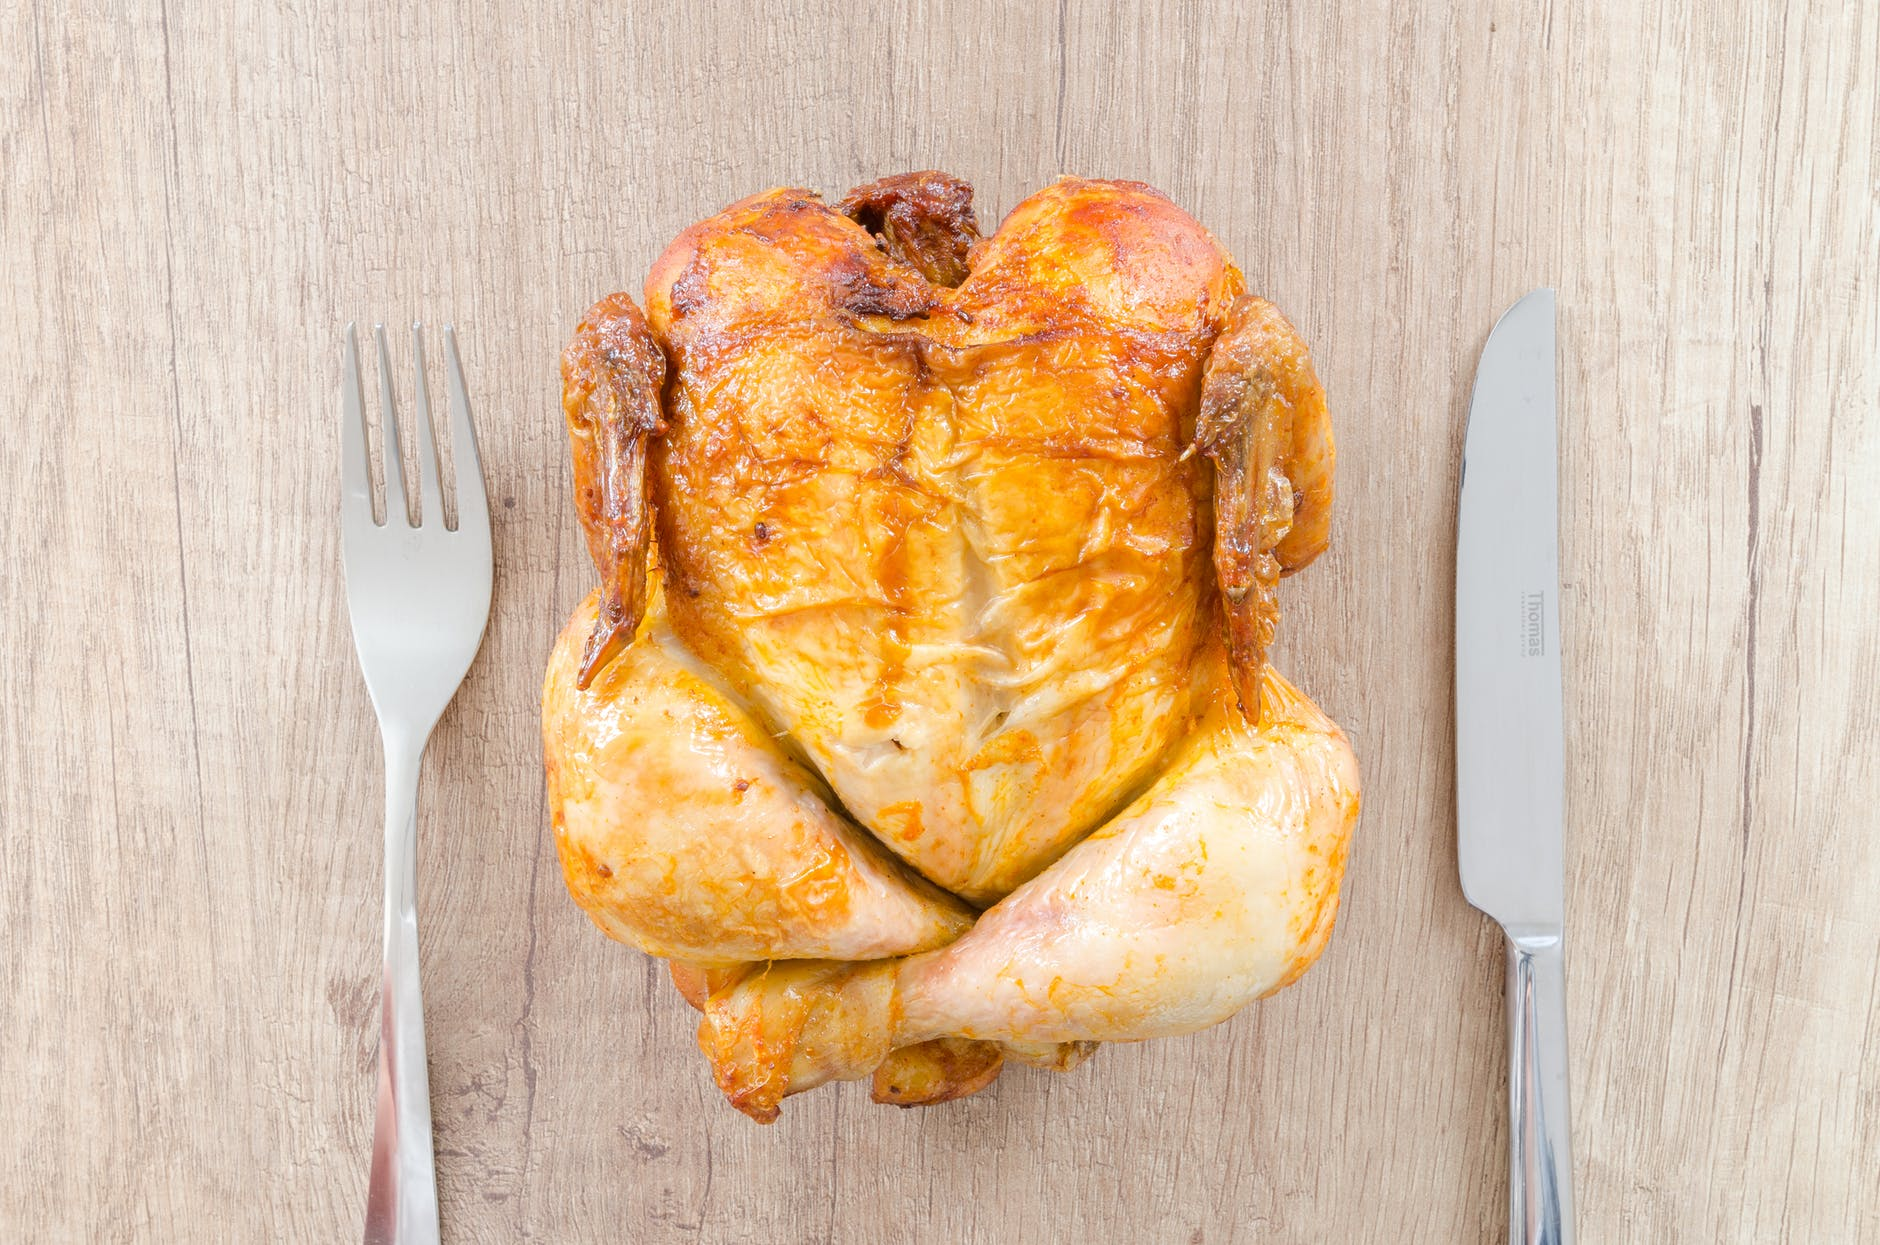 A golden brown roasted chicken on a slab of wood with a fork on the left side and knife on the right.